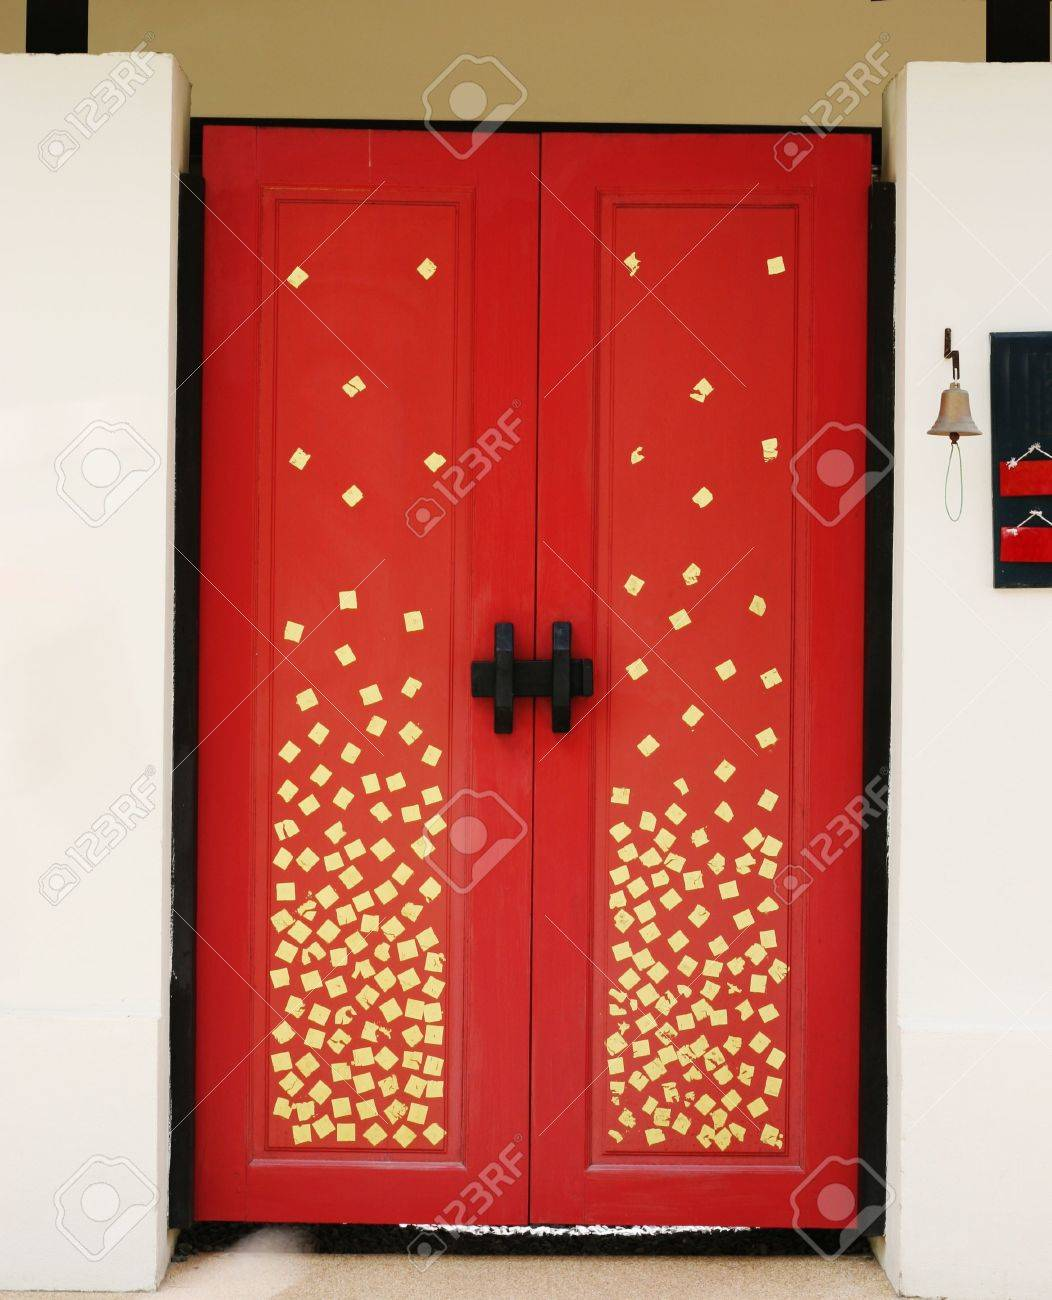 Red Door Decorated With A Gold Pattern Asian Decor Design Stock